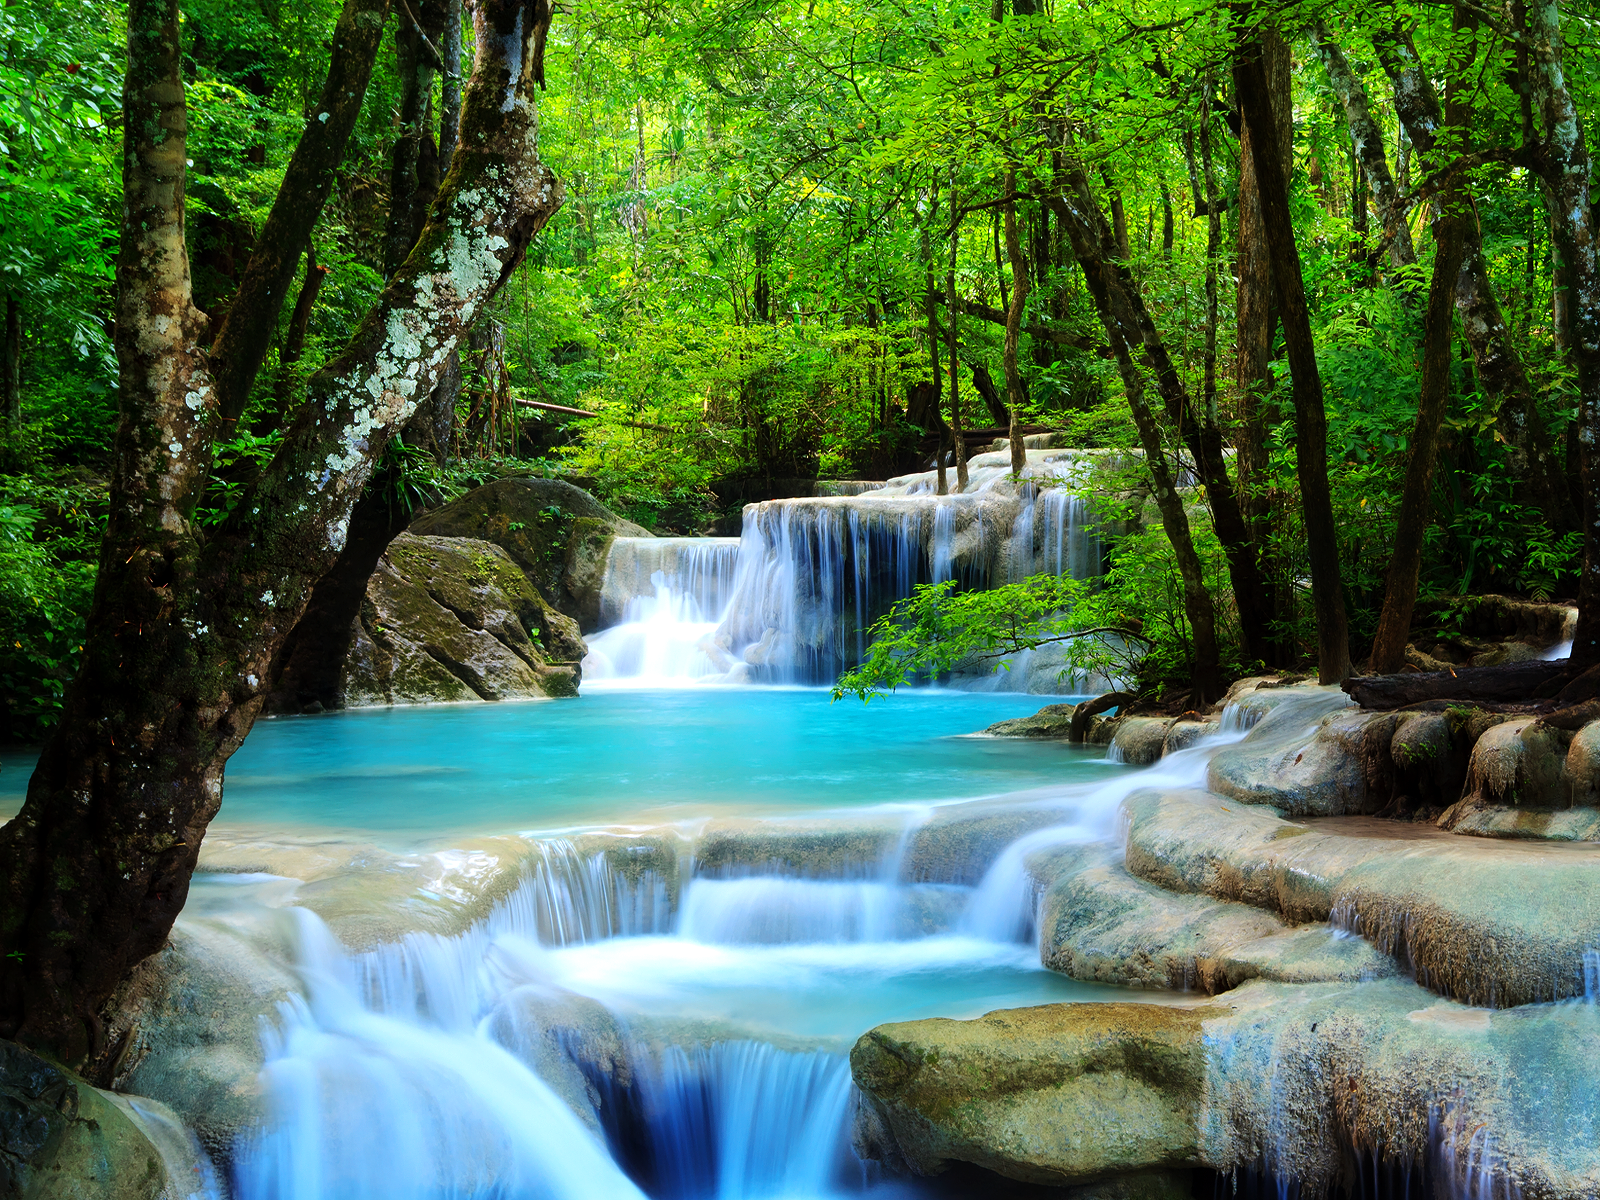 Free Animated Waterfall Desktop Wallpaper